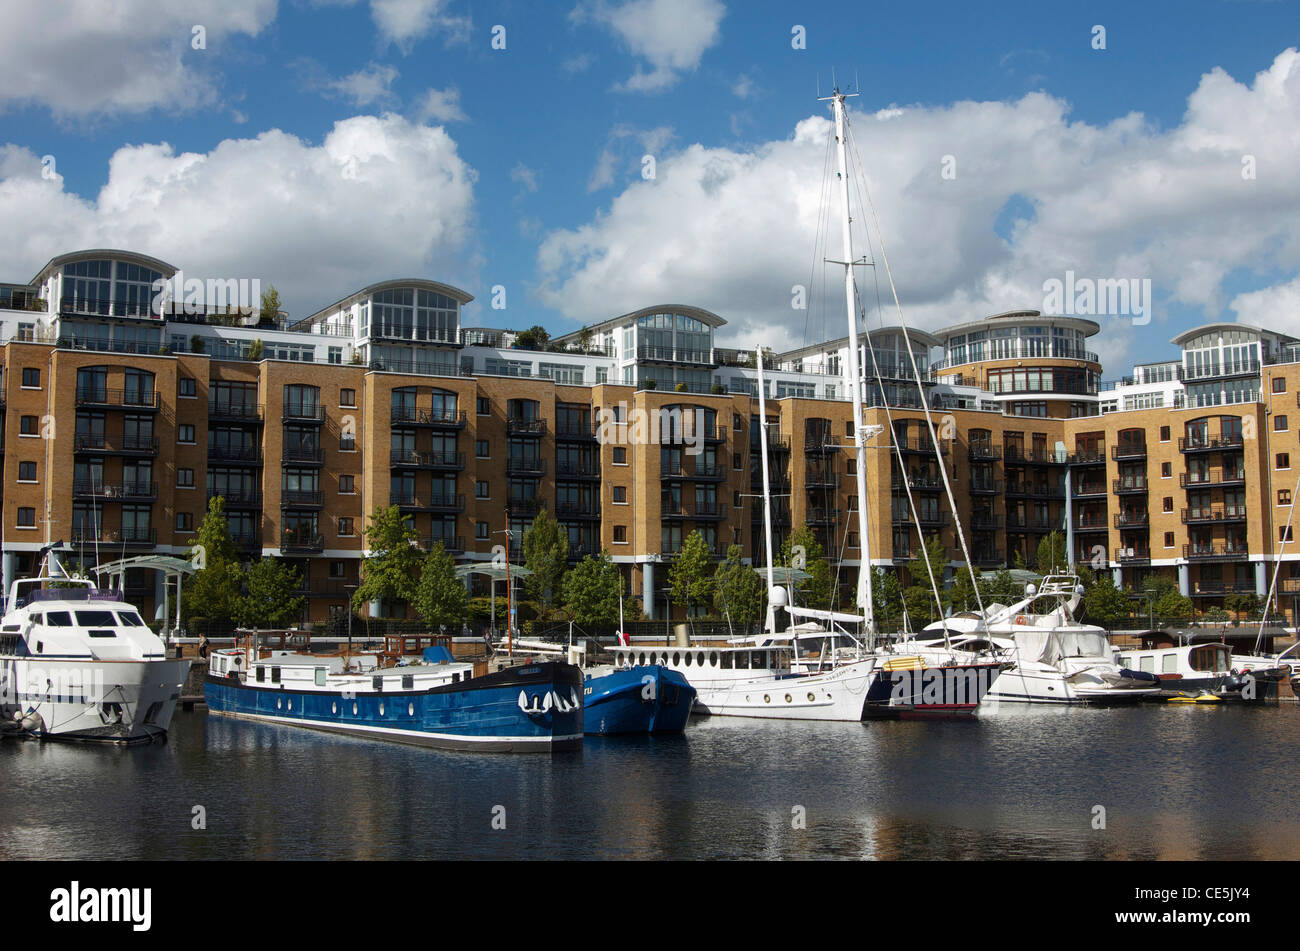 Yachts and barges in St. Katharine's Dock, London, England - Stock Image